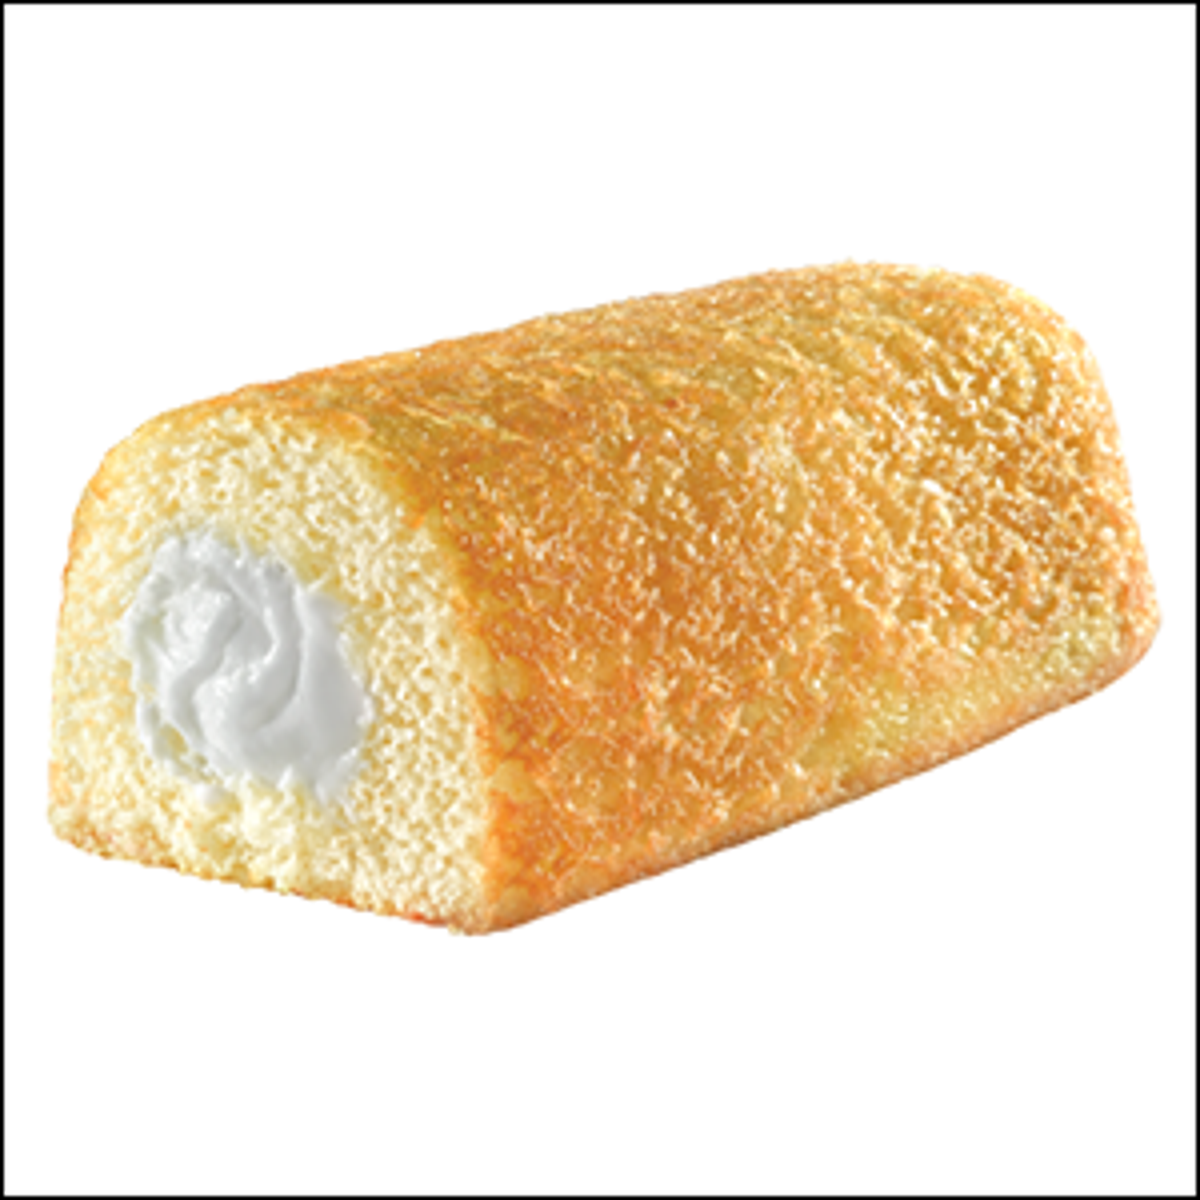 A Twinkie snack cake, with one end open to reveal the cream filling.